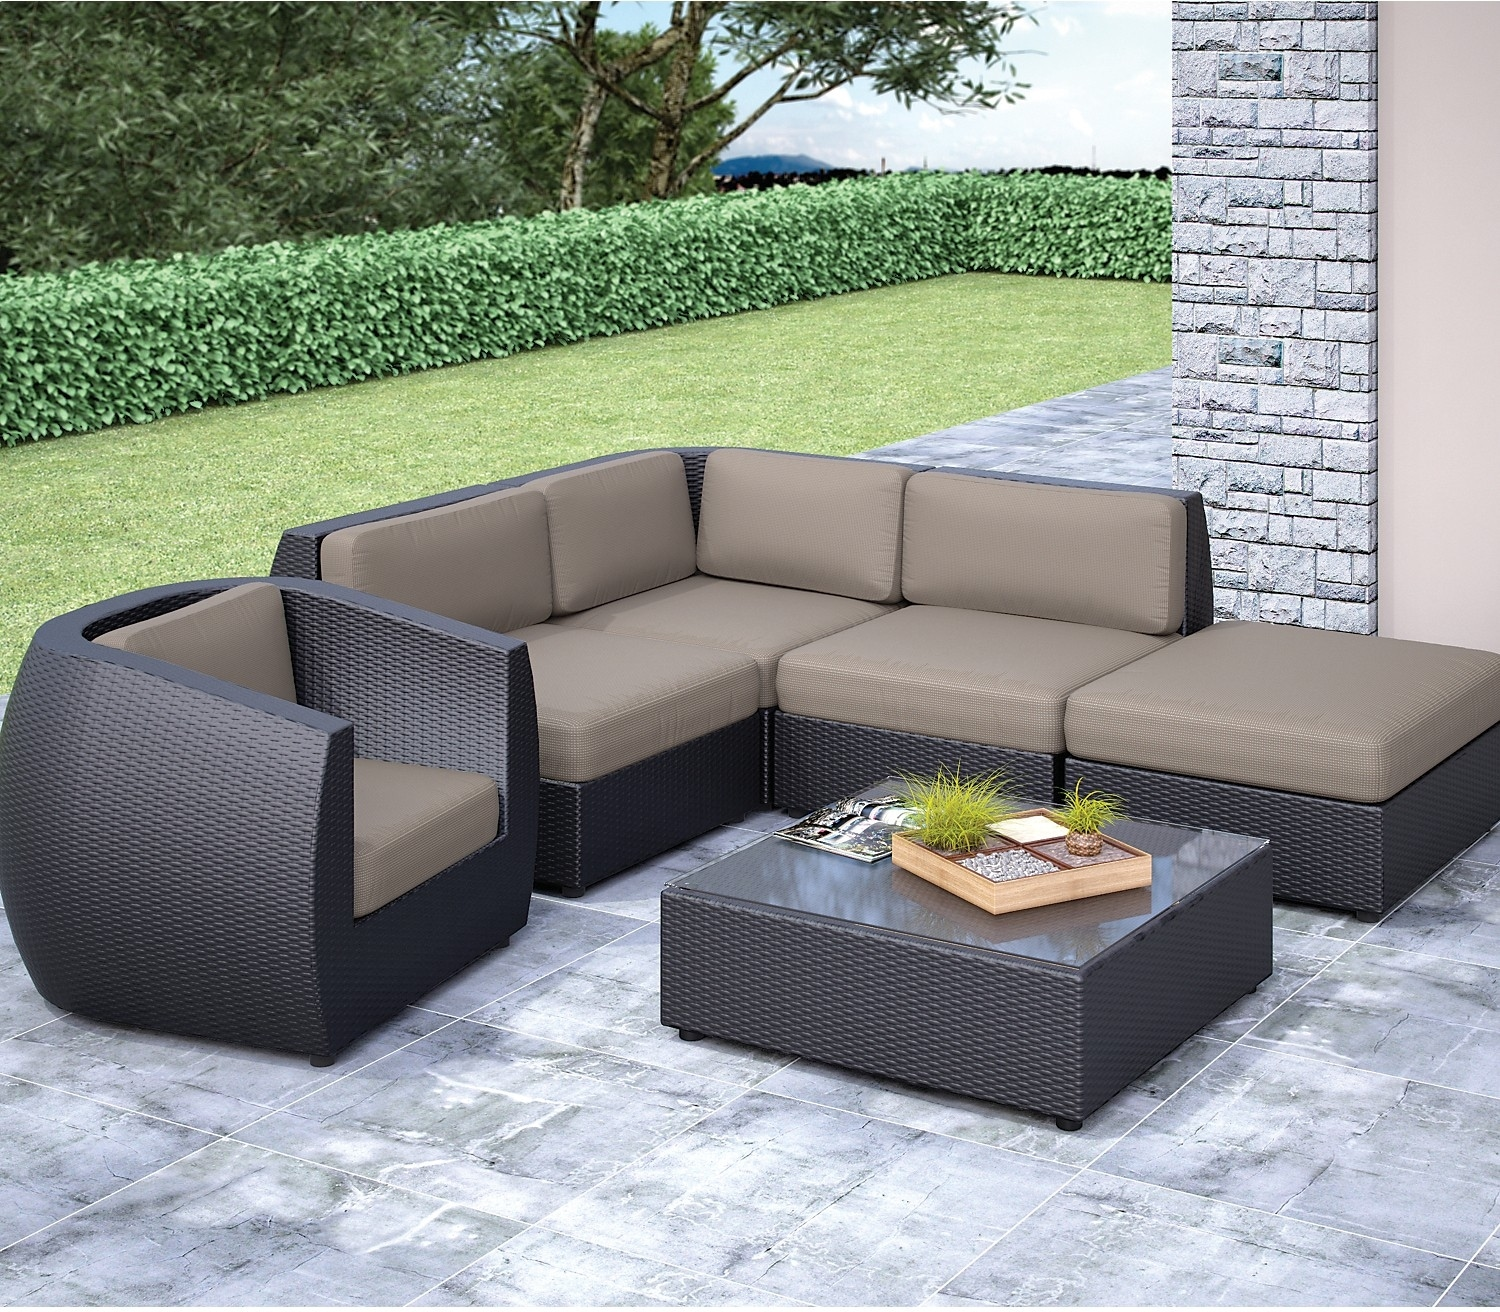 Outdoor Furniture - Seattle Sectional, Table and Chair Set